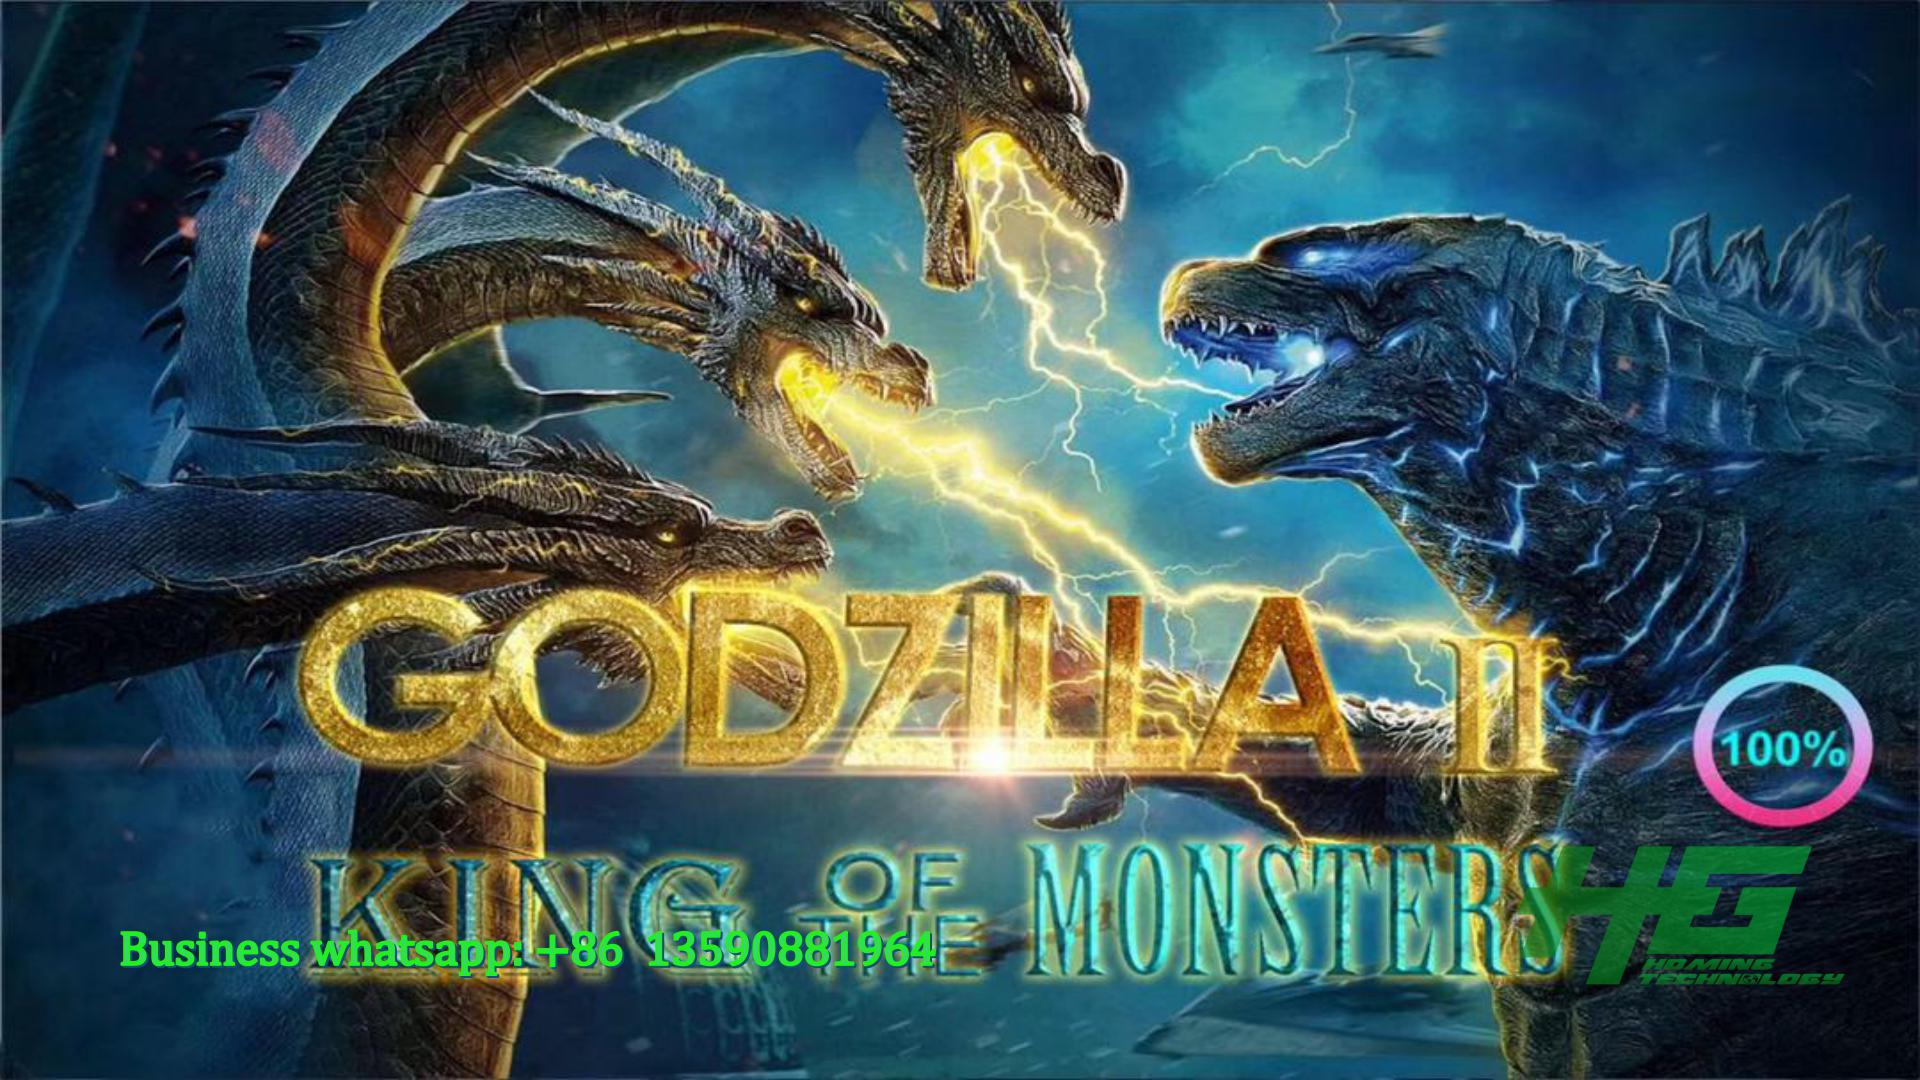 Hot Myanmar, Vietnam, Thailand, Cambodia Market,Godzilla Fishing Game,Godzilla King of Monsters Fish Game For Sale